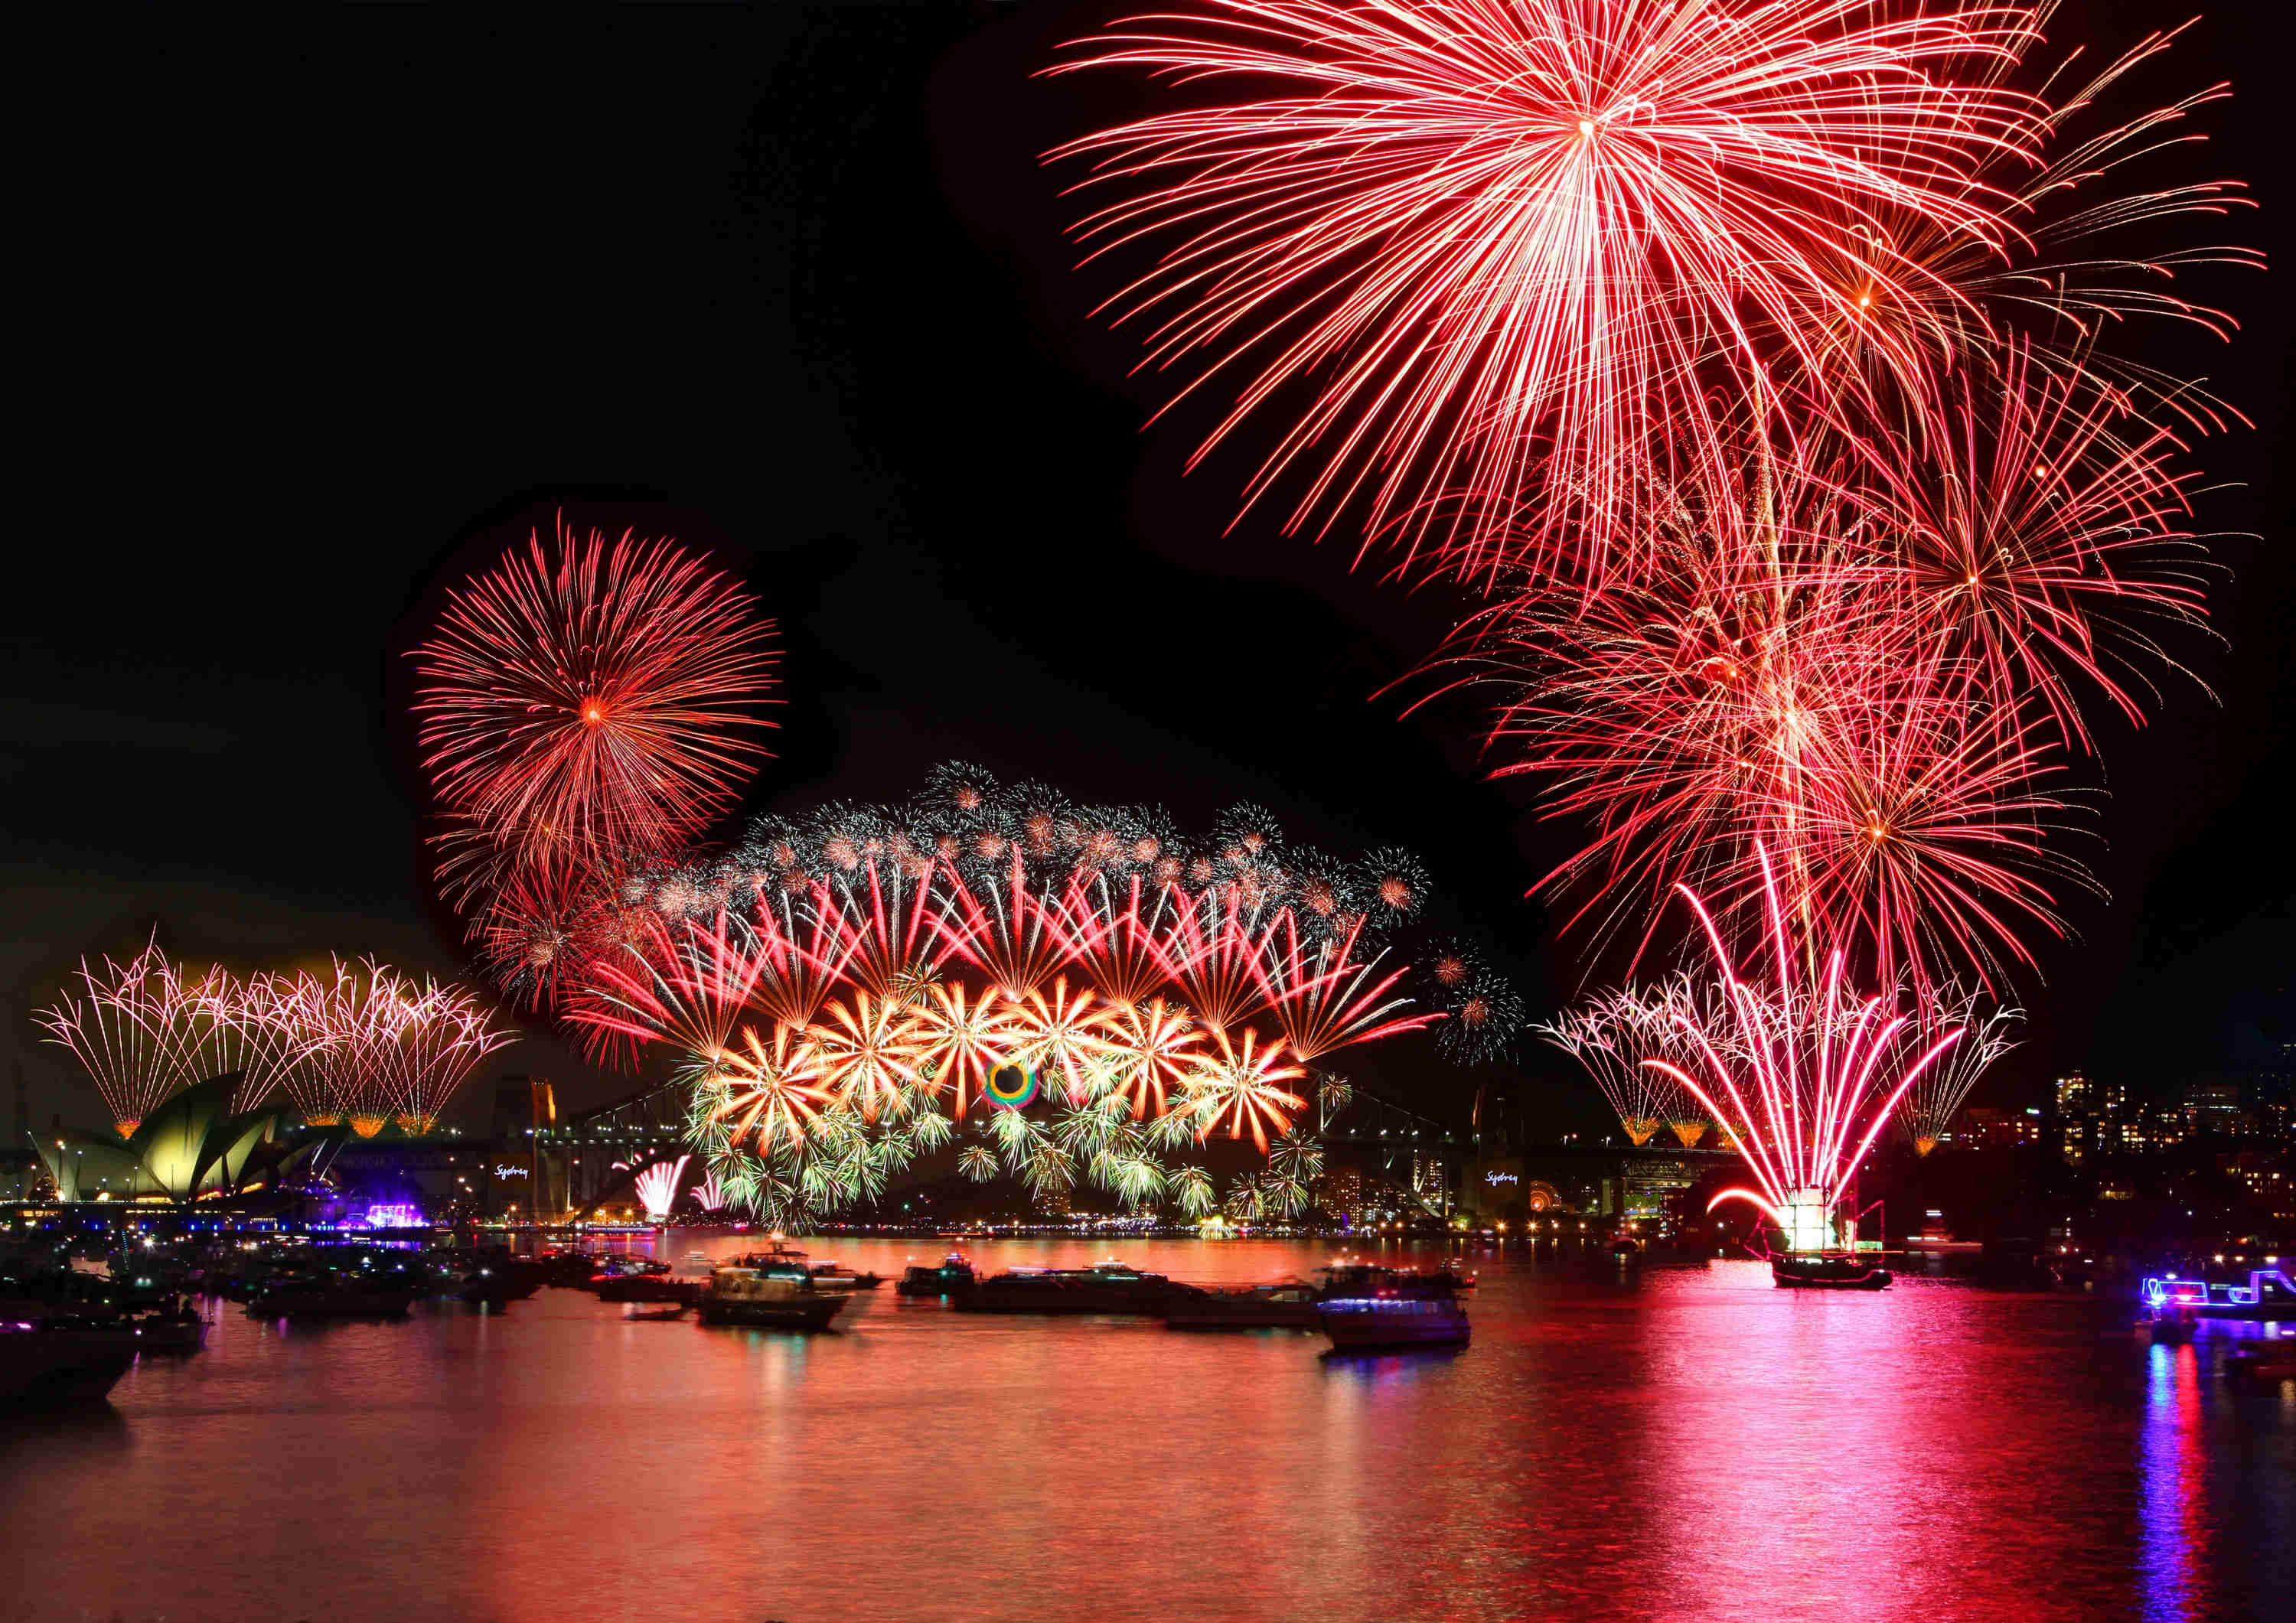 Amazing Happy New Year 2019 Fireworks Videos Hd Wallaper 3d Animated